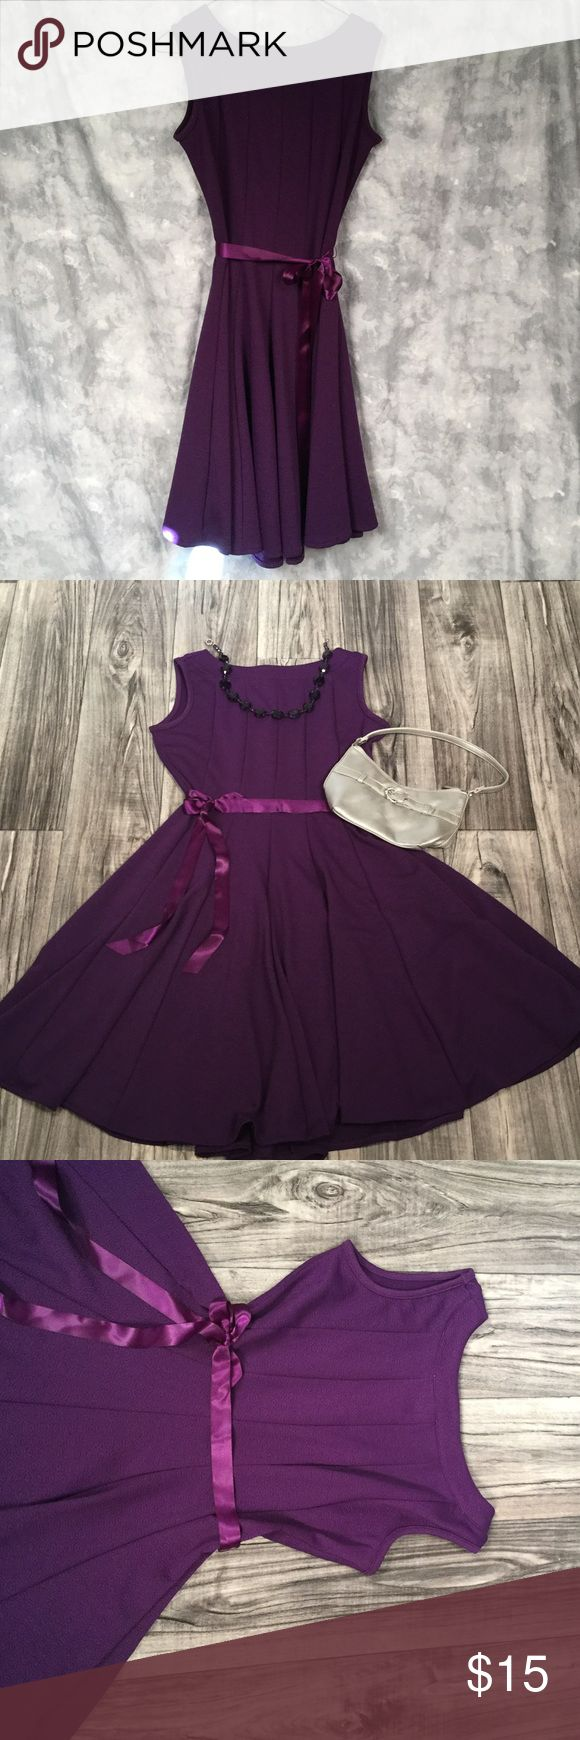 Totally Purple Petite Dress Petite Medium Dress. Like NEW, worn once. 94% polyester 9% spandex. Fabric has a textured design. Includes Ribbon Sash. Great for traveling. Very wrinkle resistant. HAANI Dresses